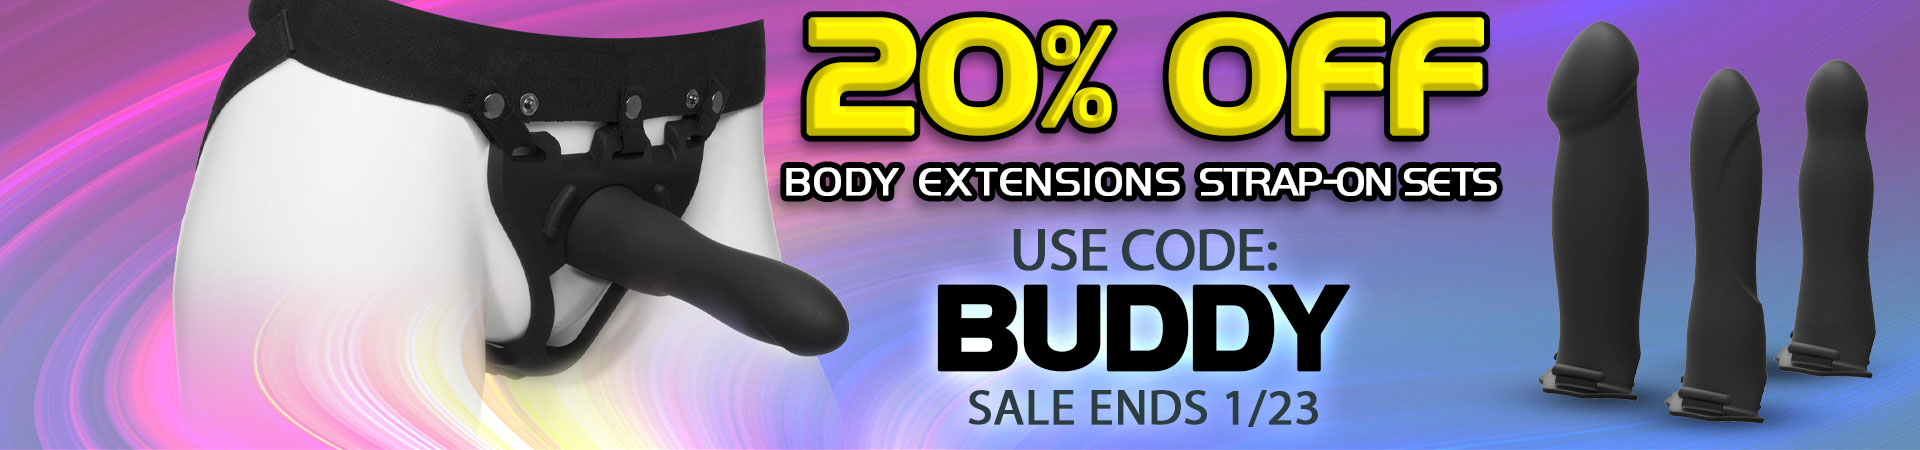 20% off body extensions strap on sets use code: BUDDY sale ends 1/23